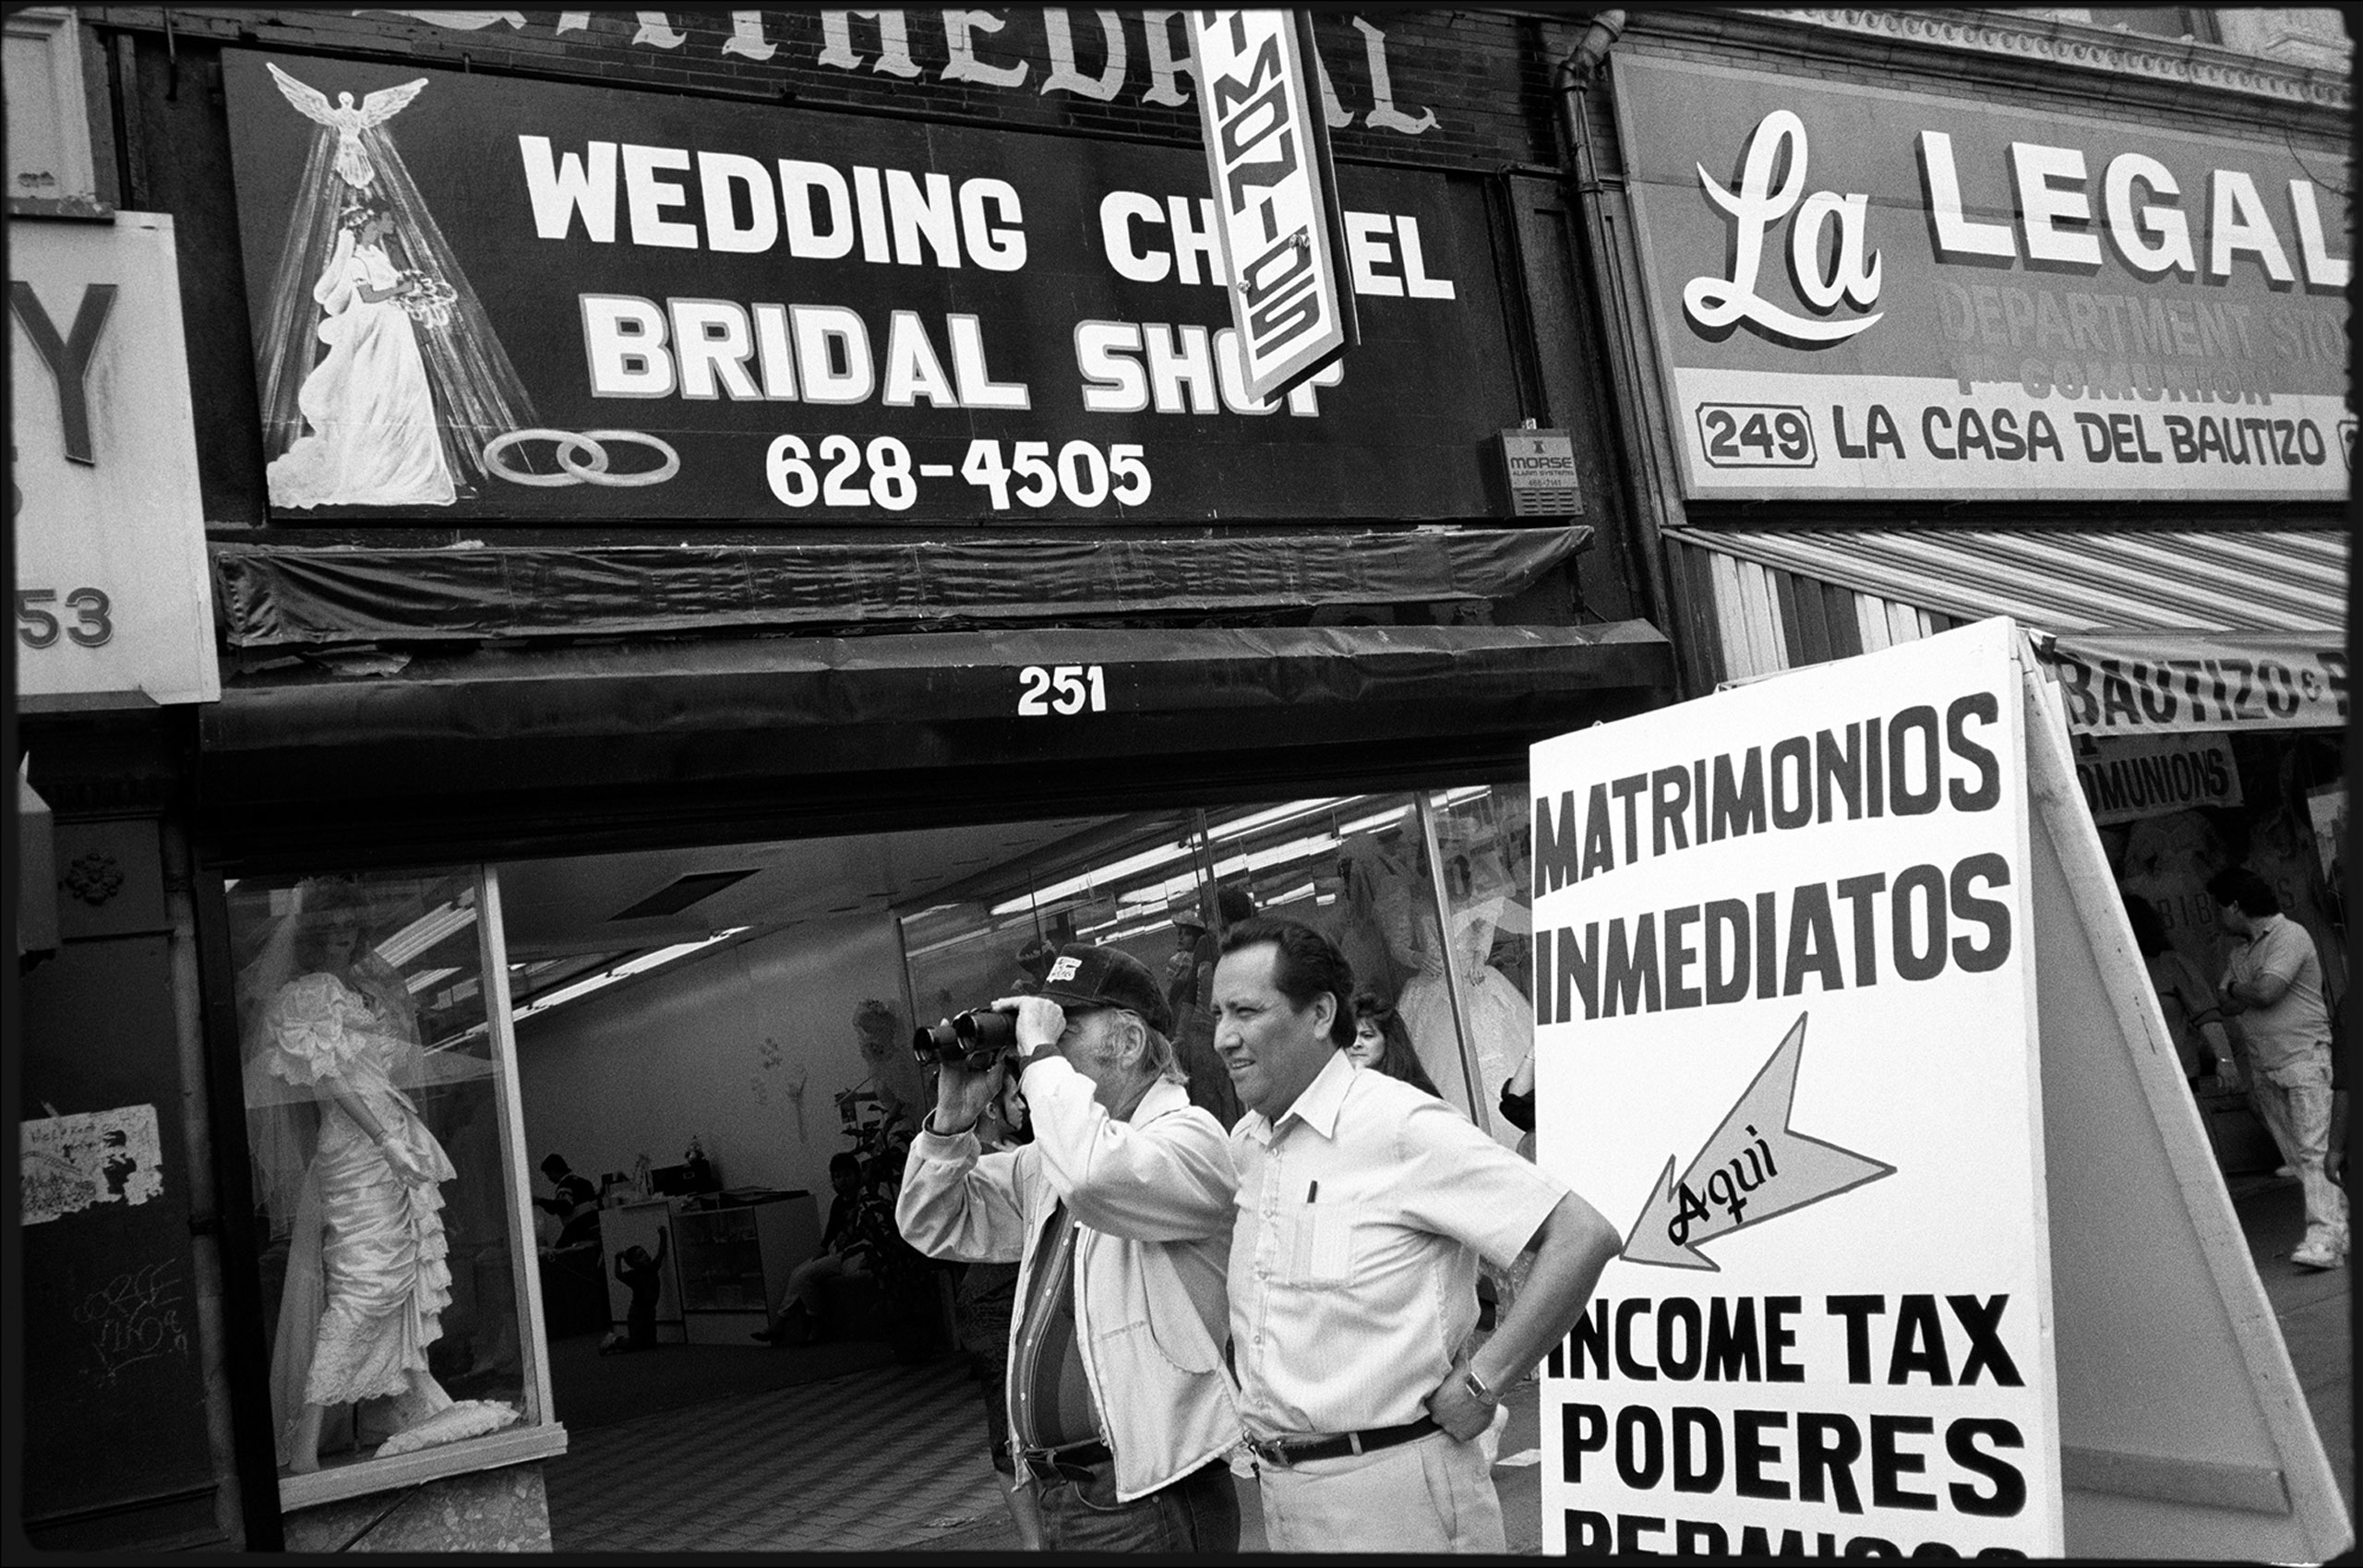 Immediate Weddings, Los Angeles, 1990